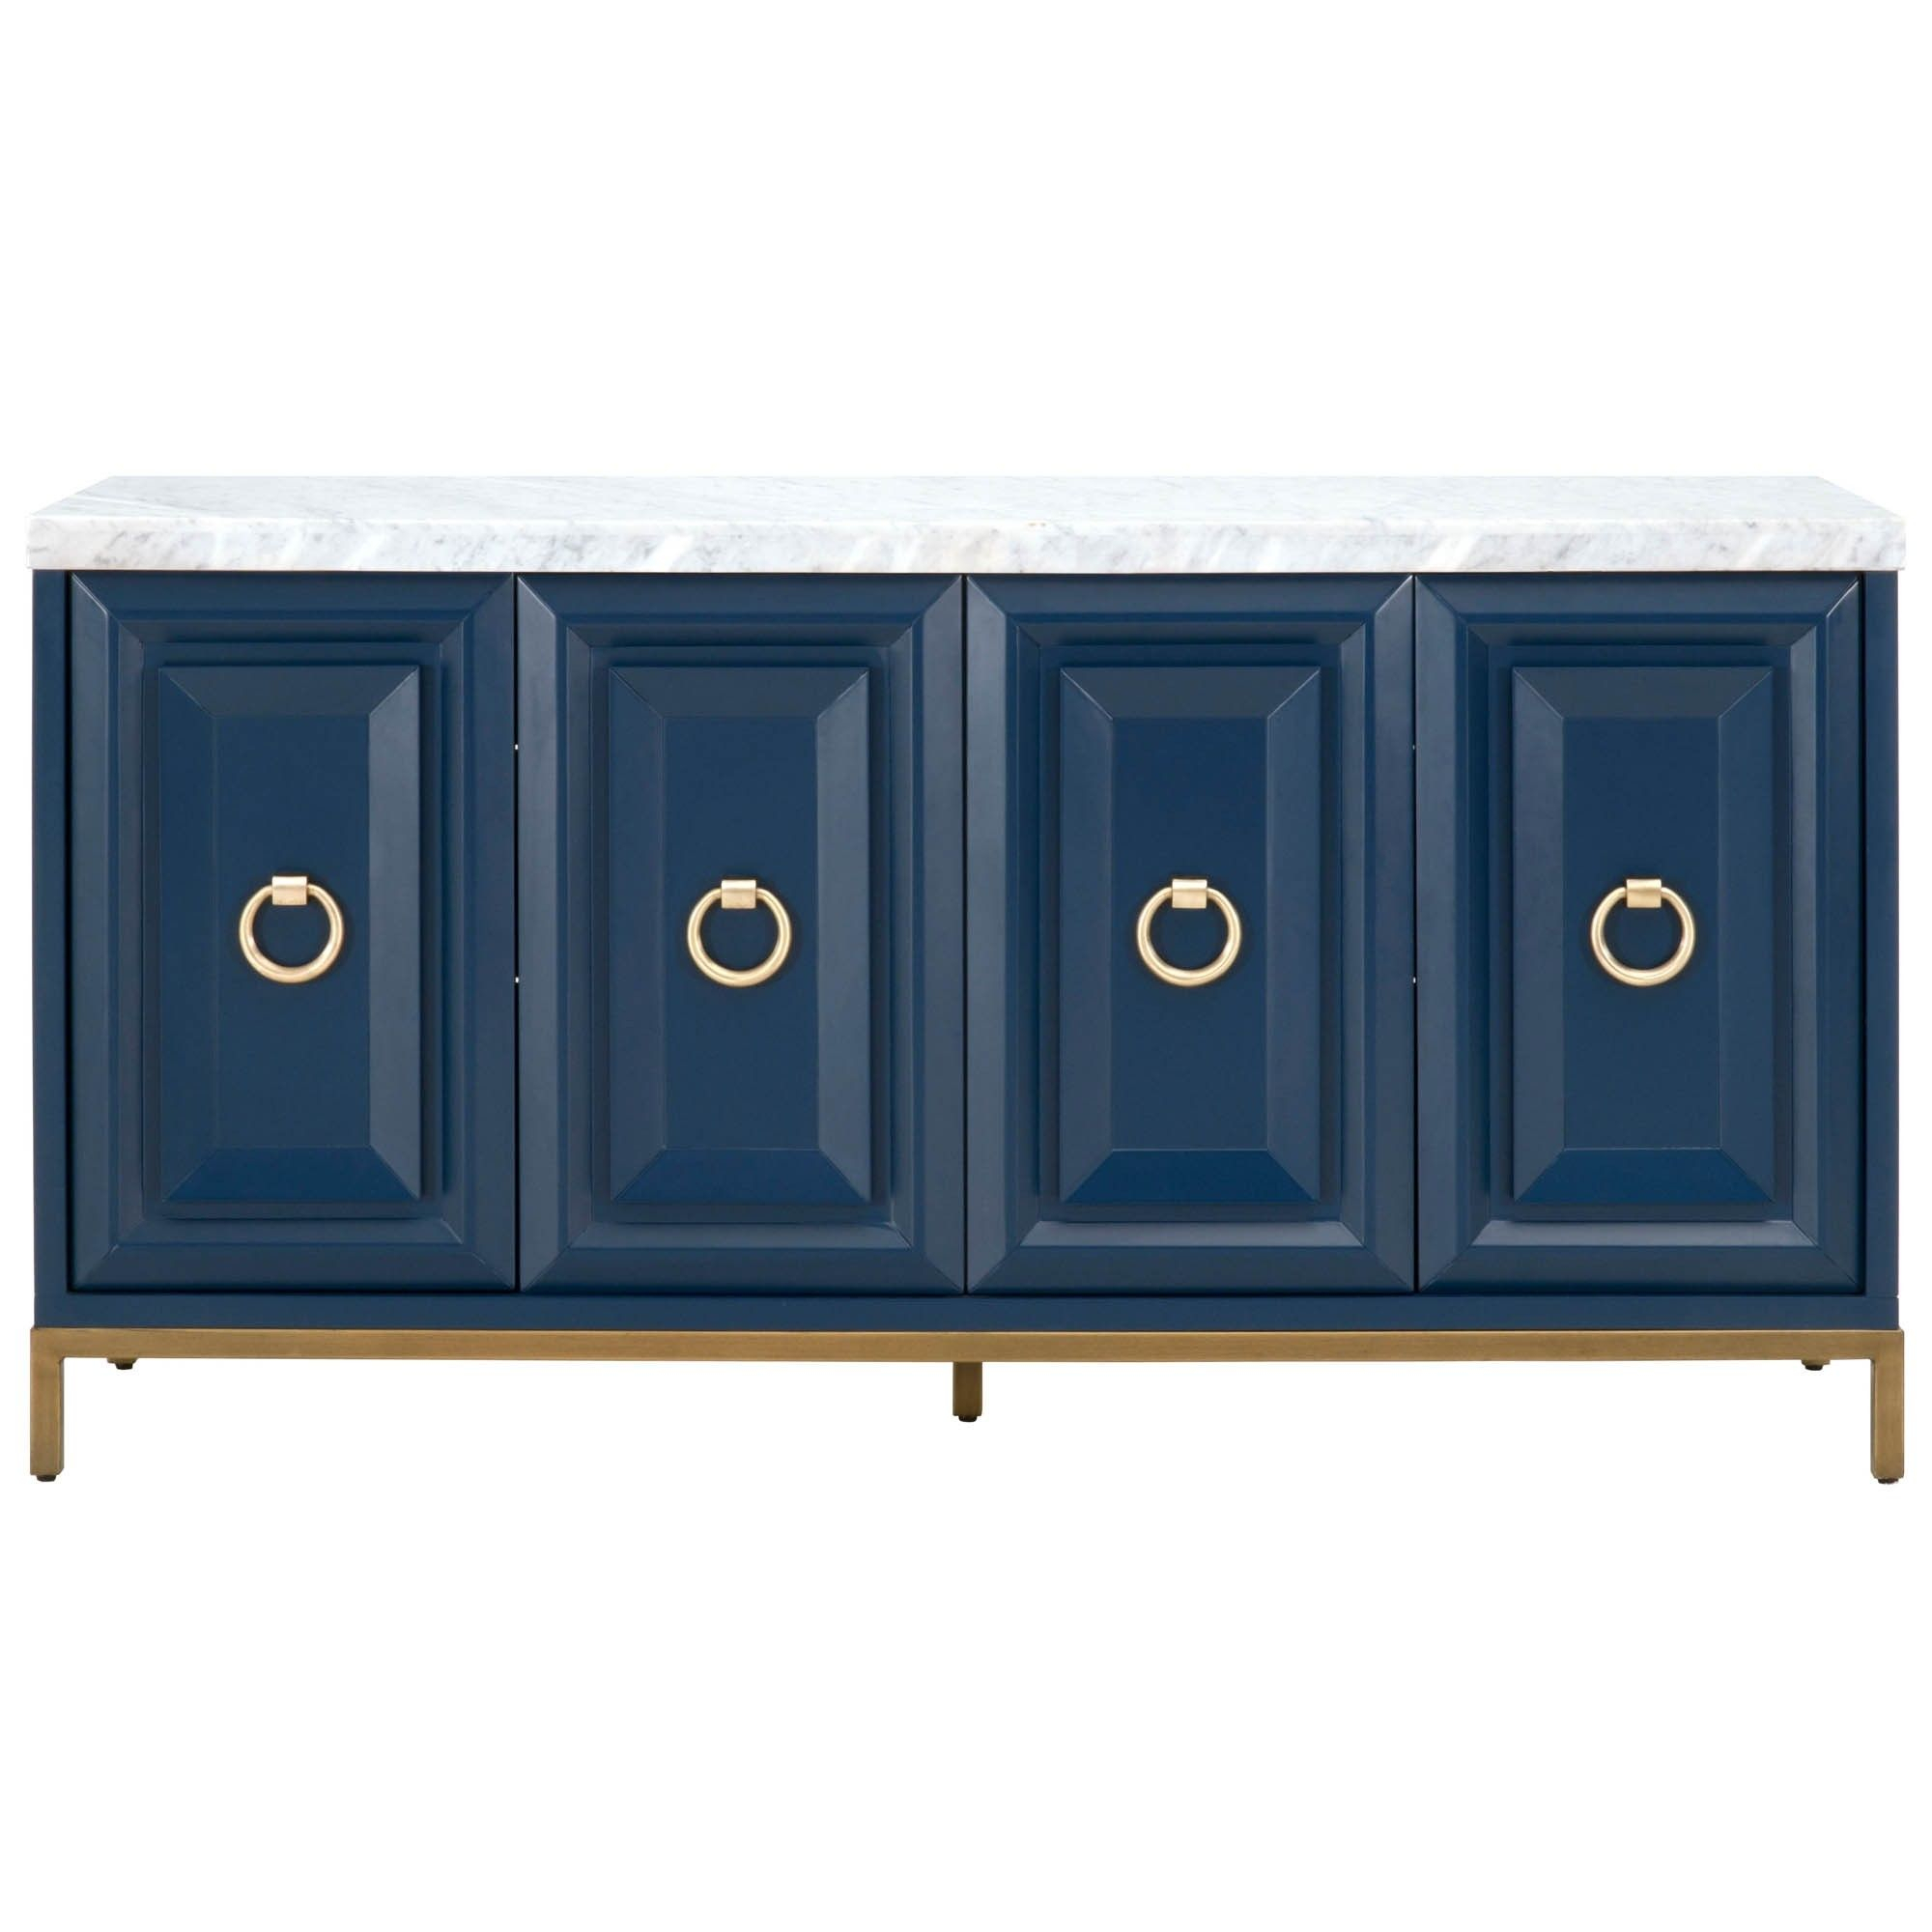 Candelabra Home Azure Carrera Sideboard – Navy | Greenway Inside Carrera Contemporary Black Dining Buffets (View 3 of 30)